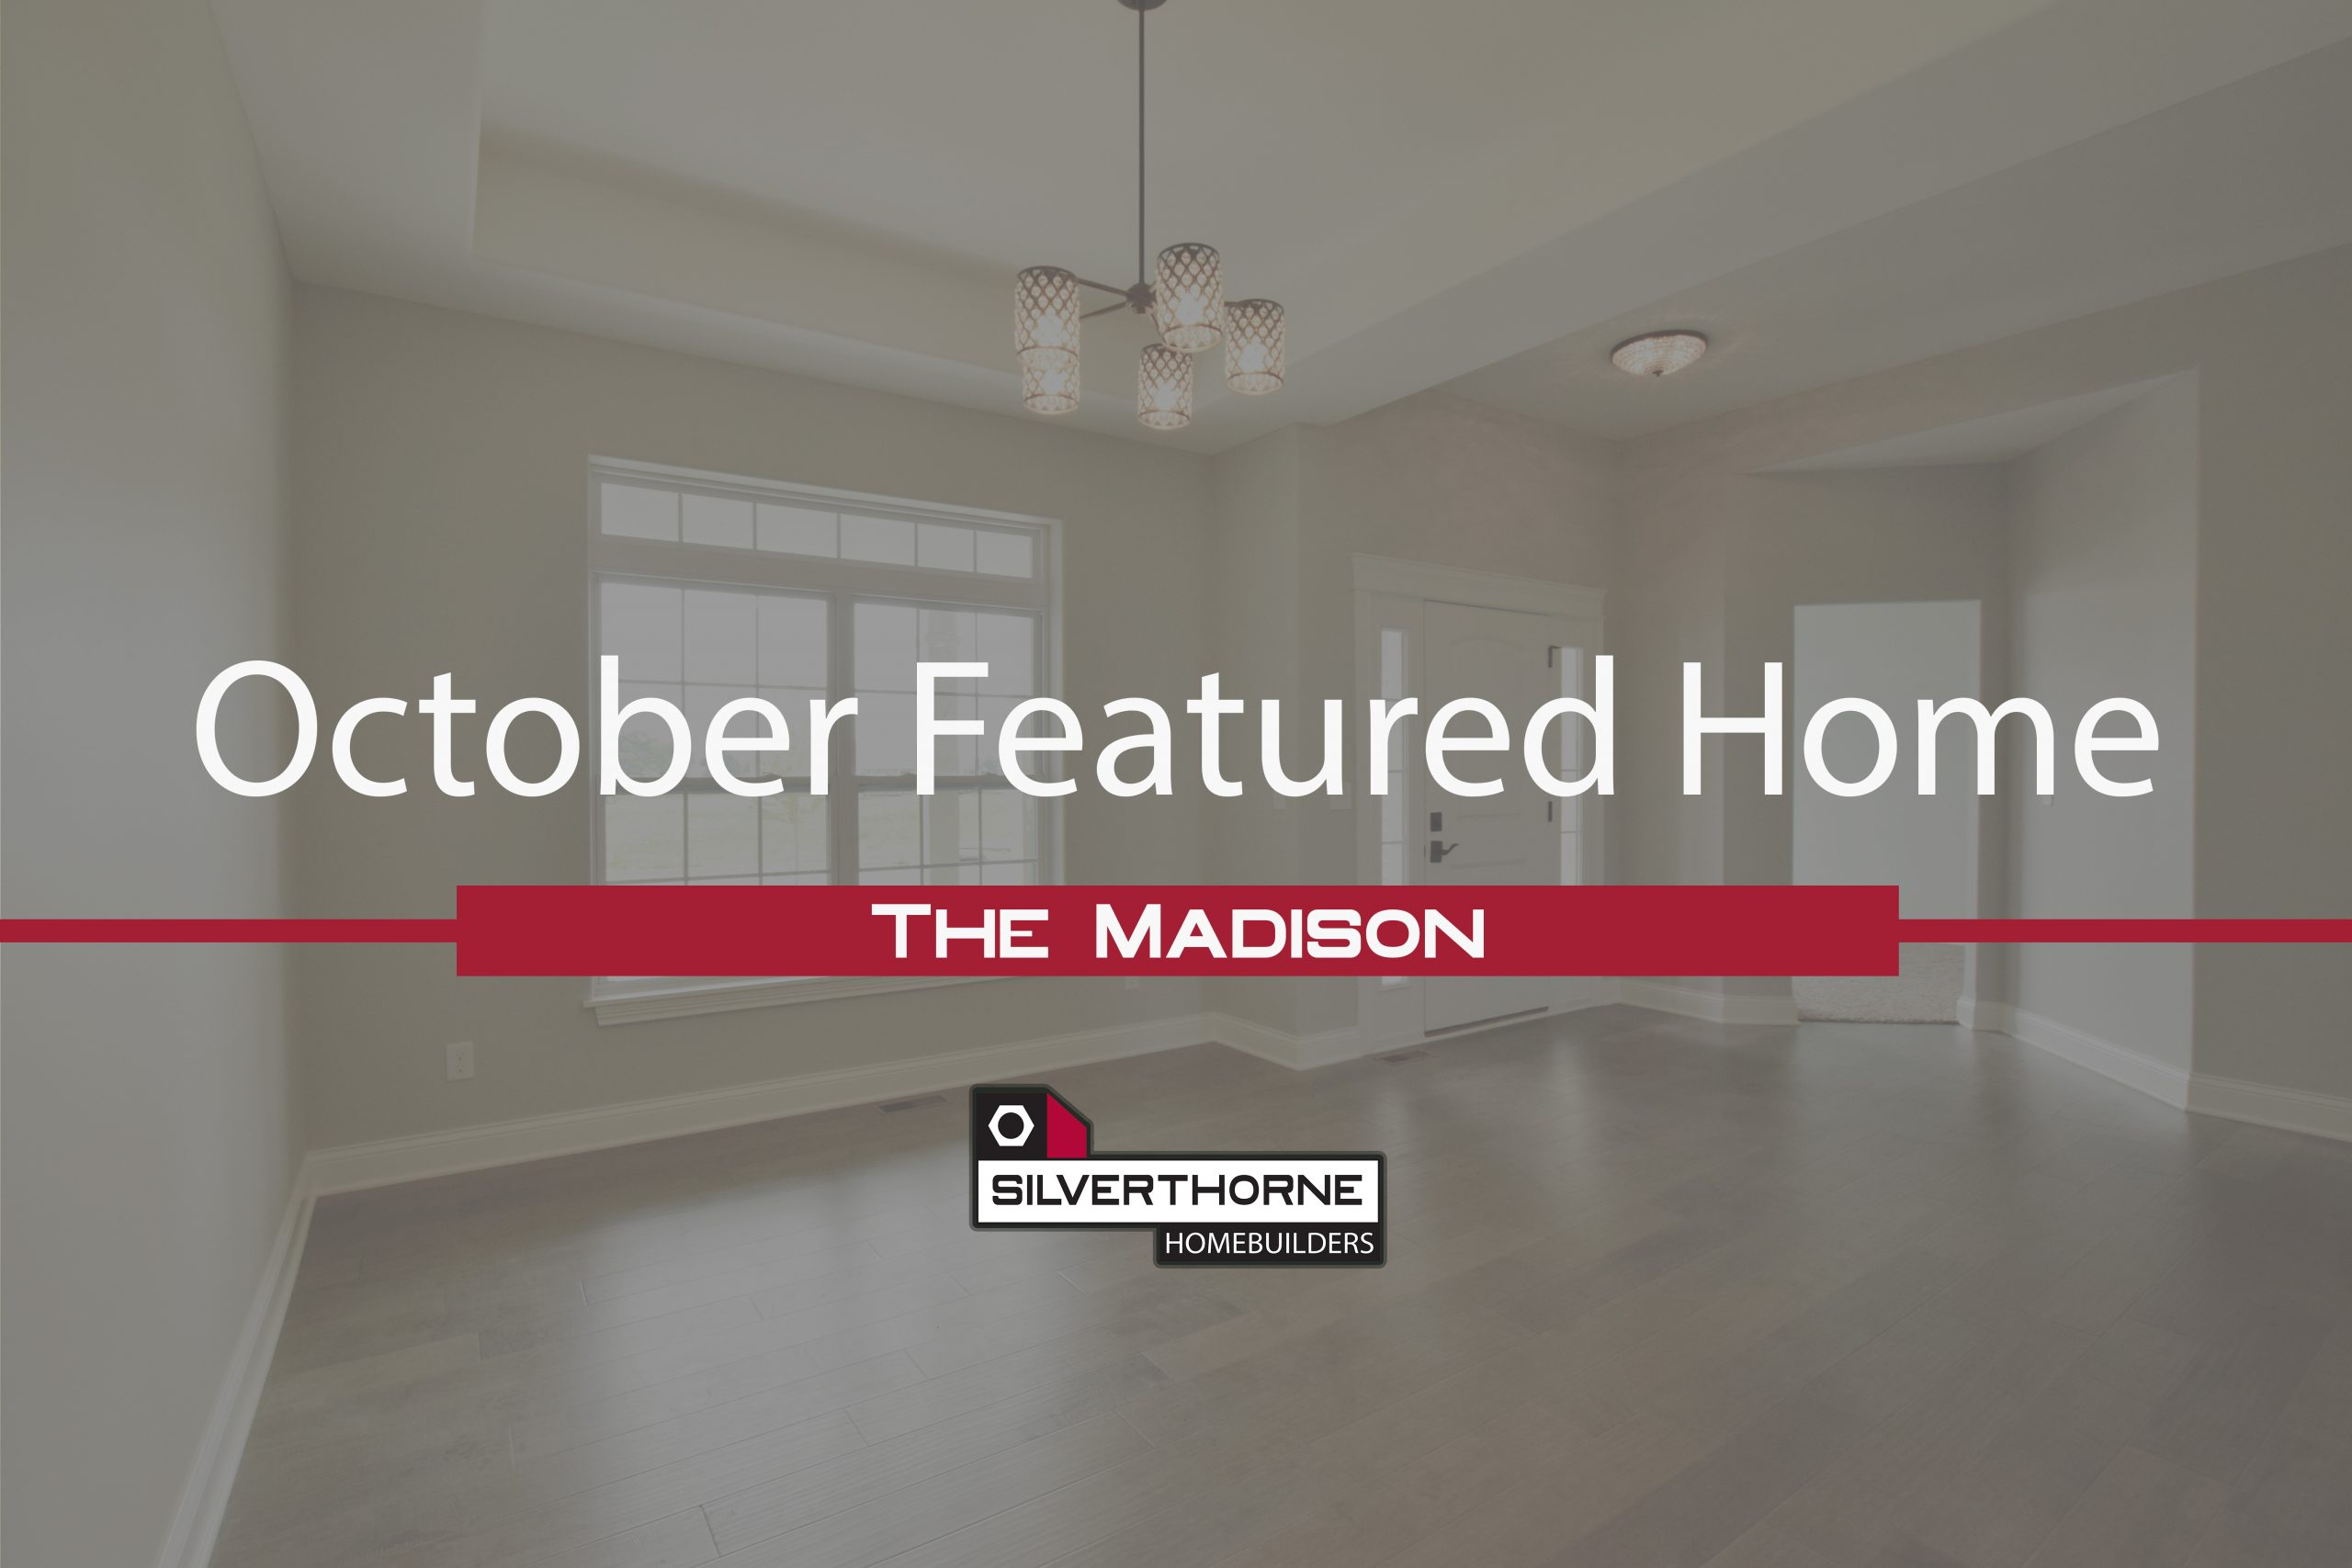 October's Featured Home: The Madison